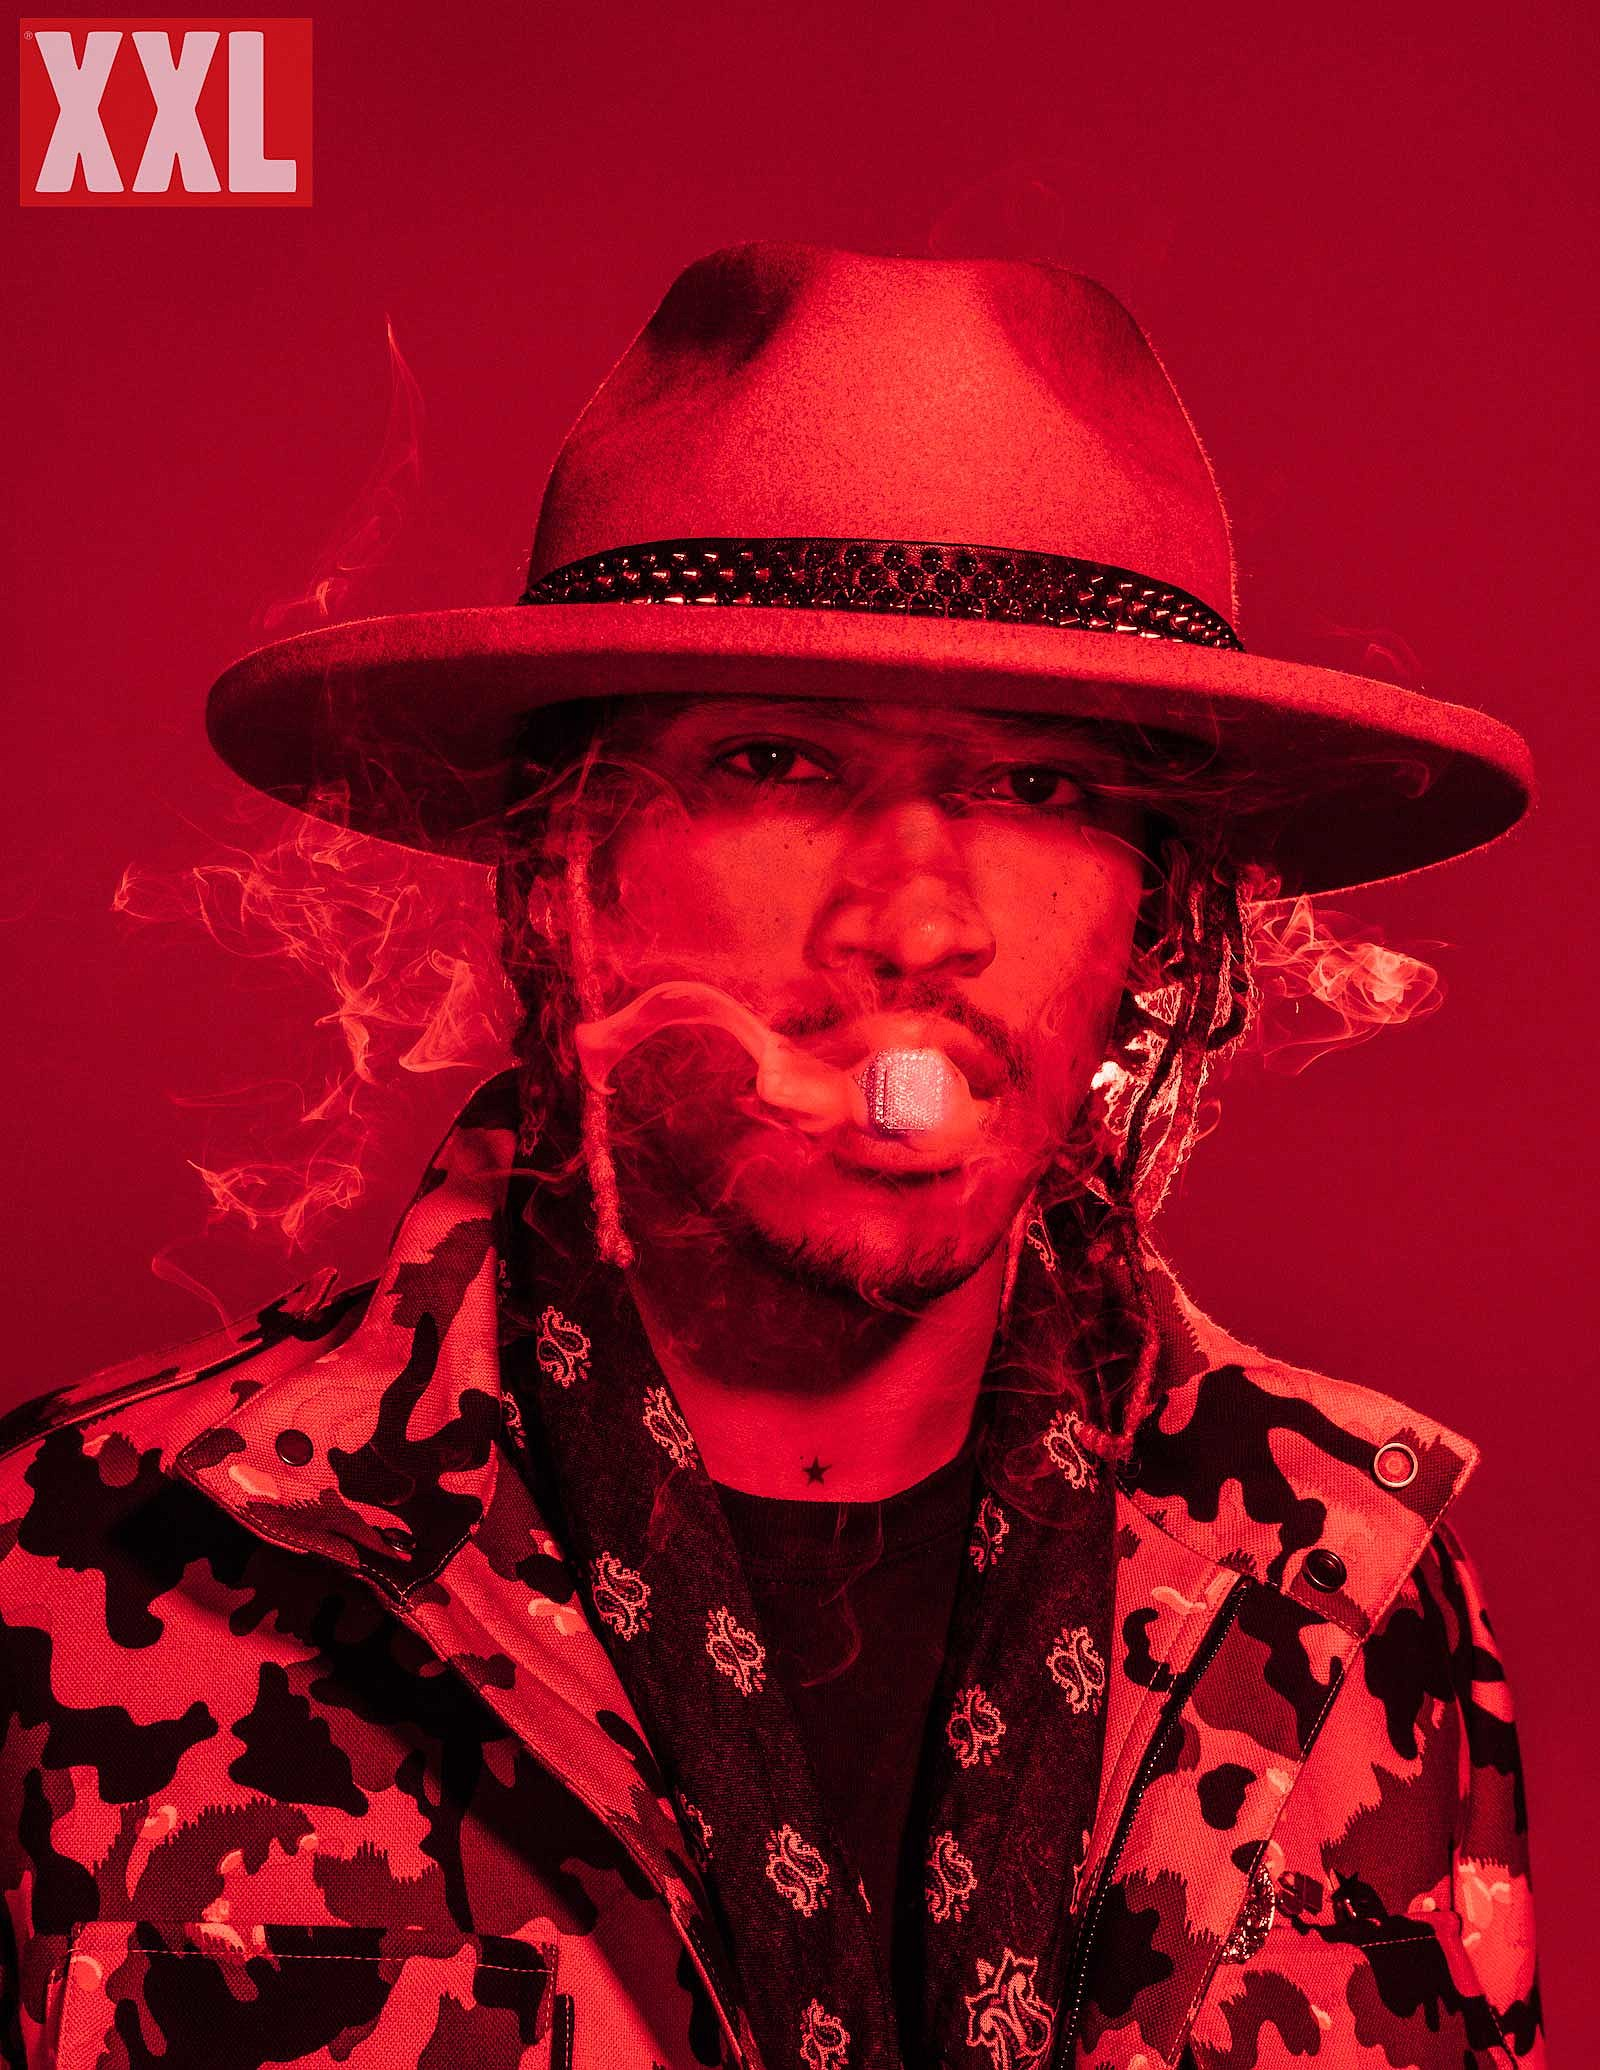 Behind-The-Scenes Future's XXL Cover Shoot diamond red